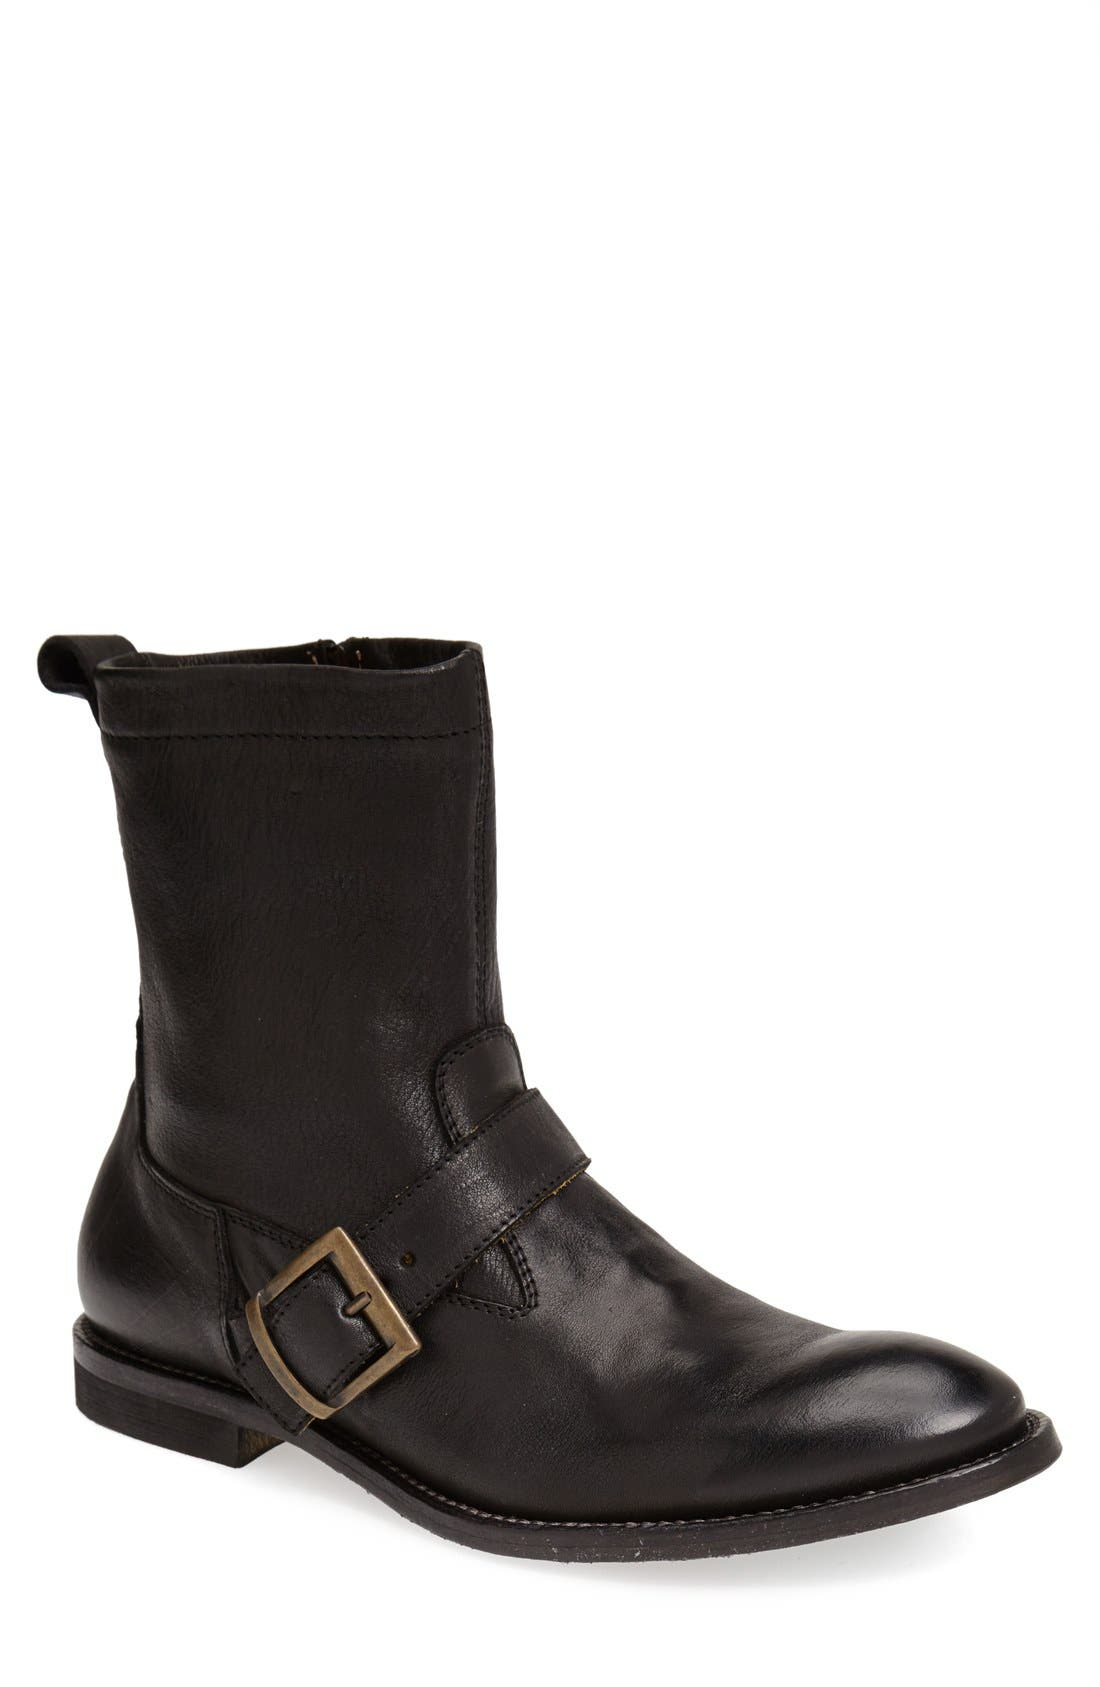 Main Image - MODERN FICTION HARNESS BOOT